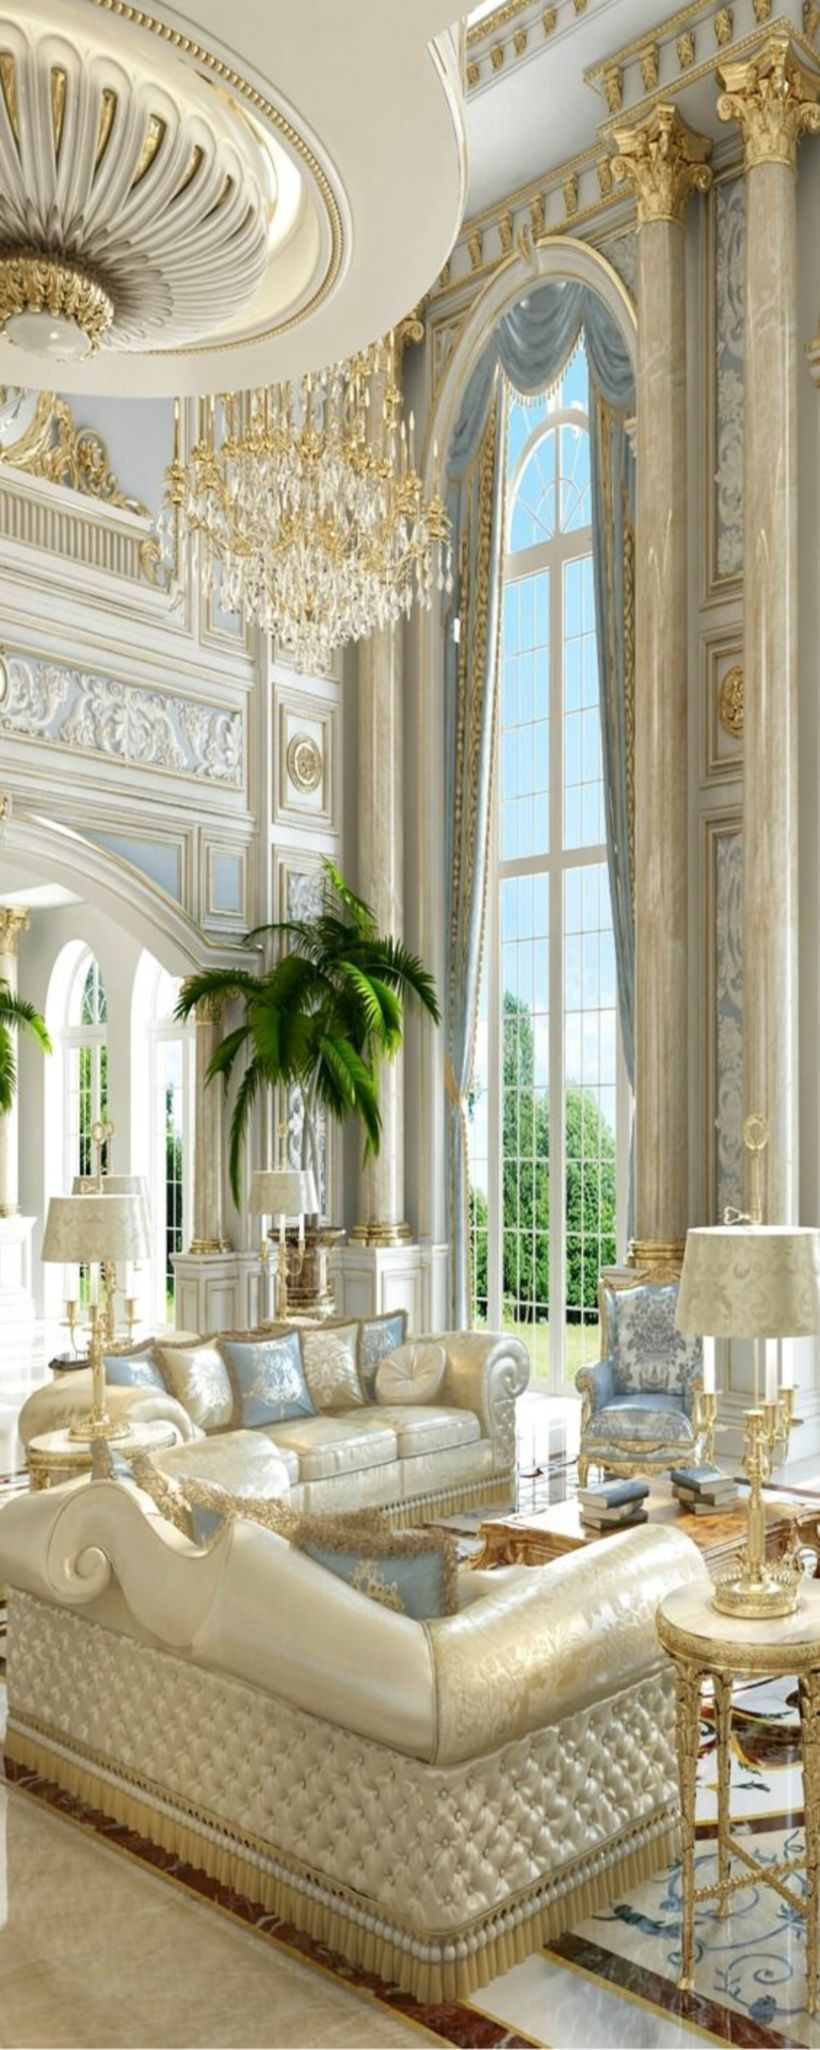 House Drawing Room Designs: Breathtaking 16 Elegant And Luxury Living Room Decoration